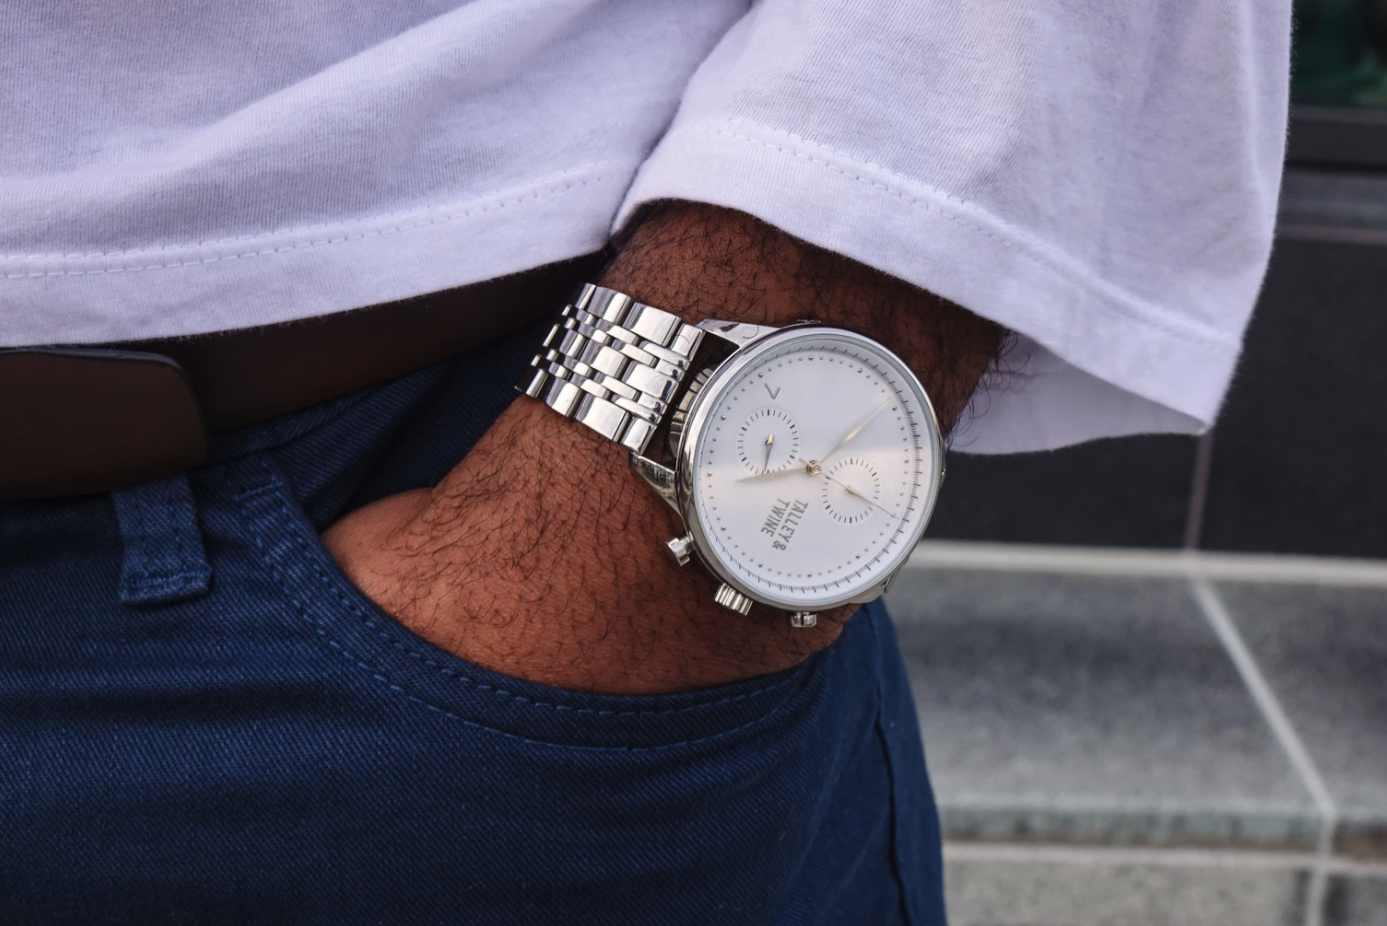 The watch in silver on a wrist